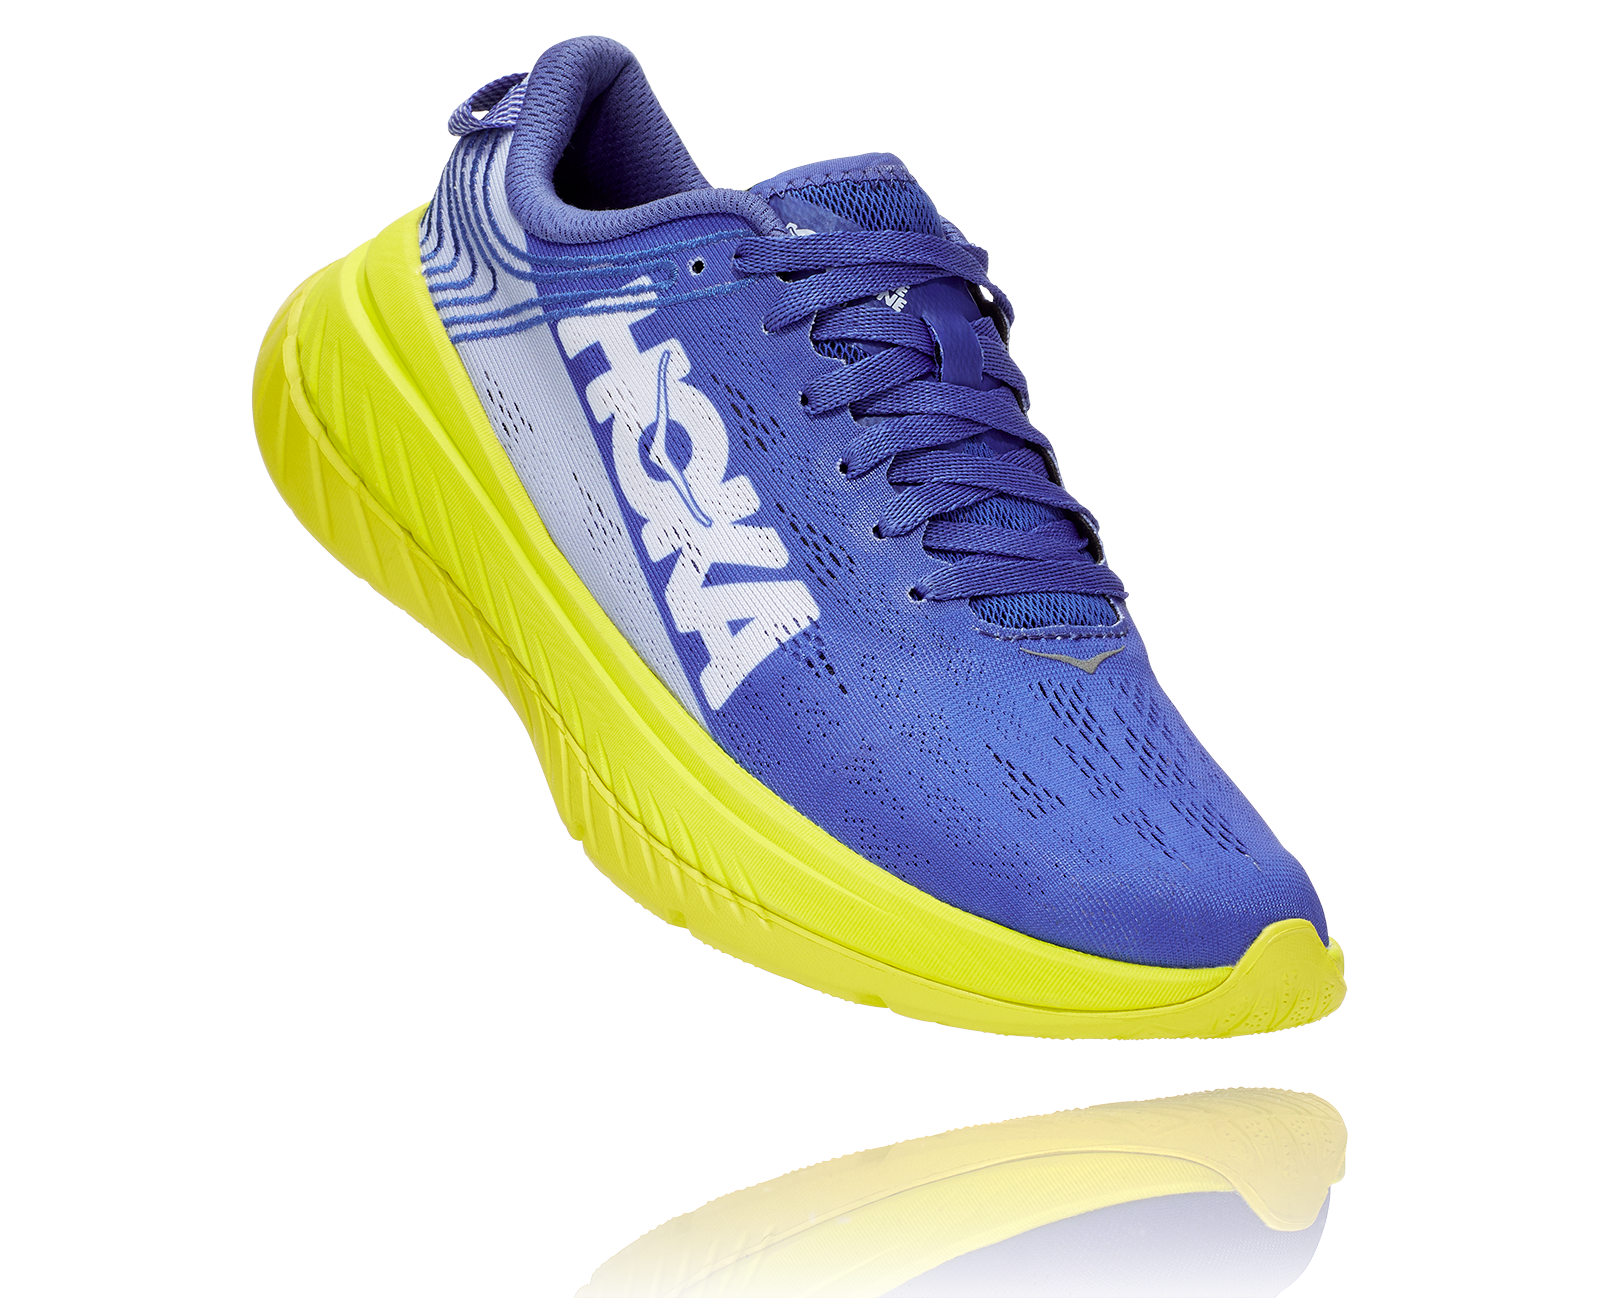 Hoka One One Carbon X (W)